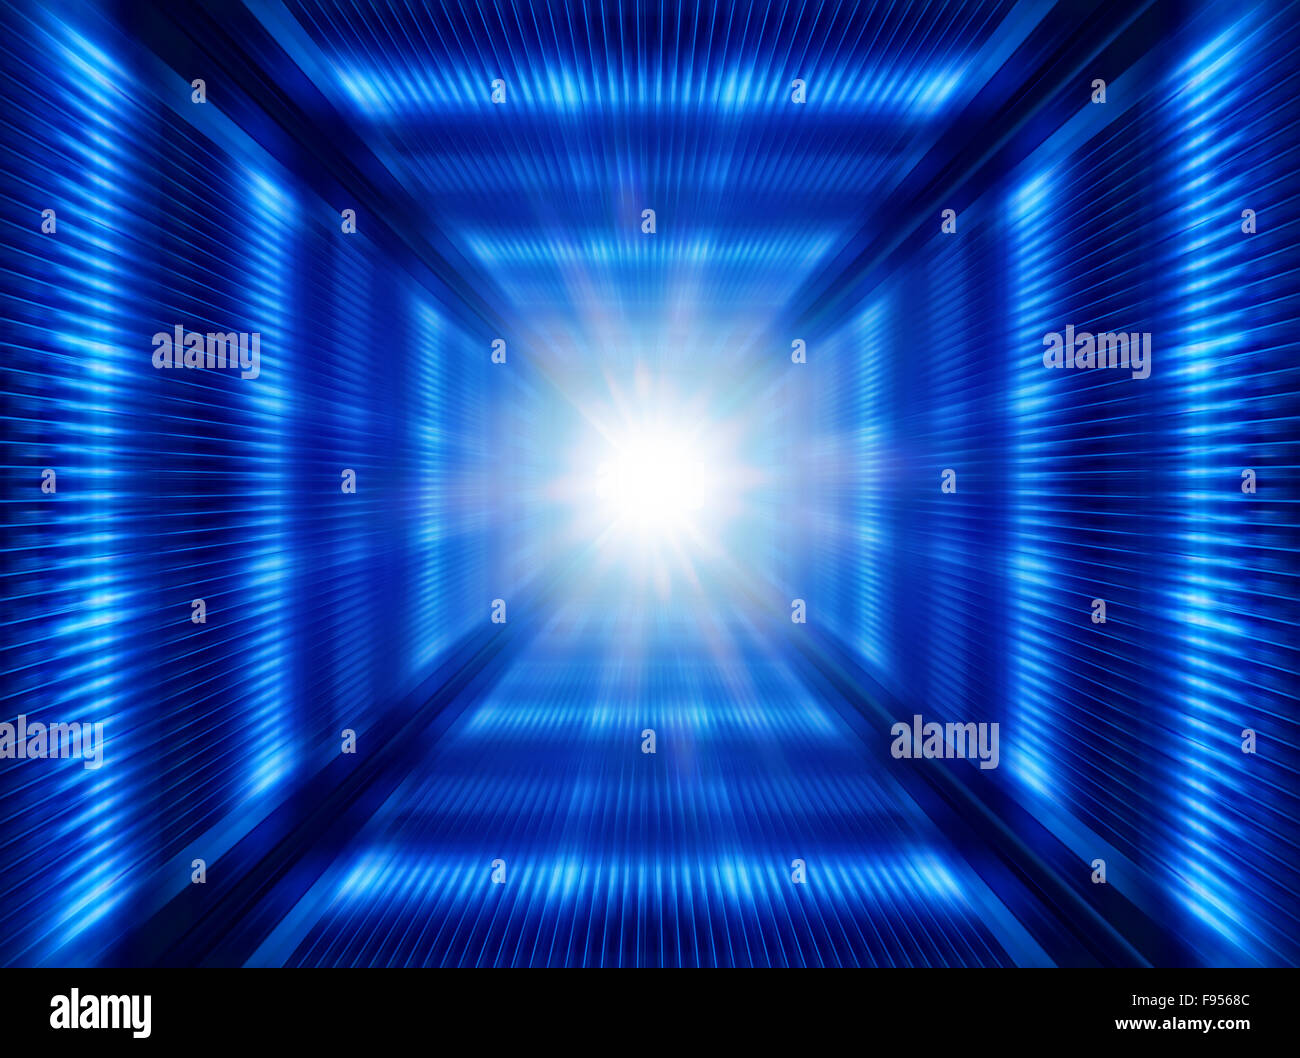 greased bright multi-colored abstract background, futuristic illustration - Stock Image